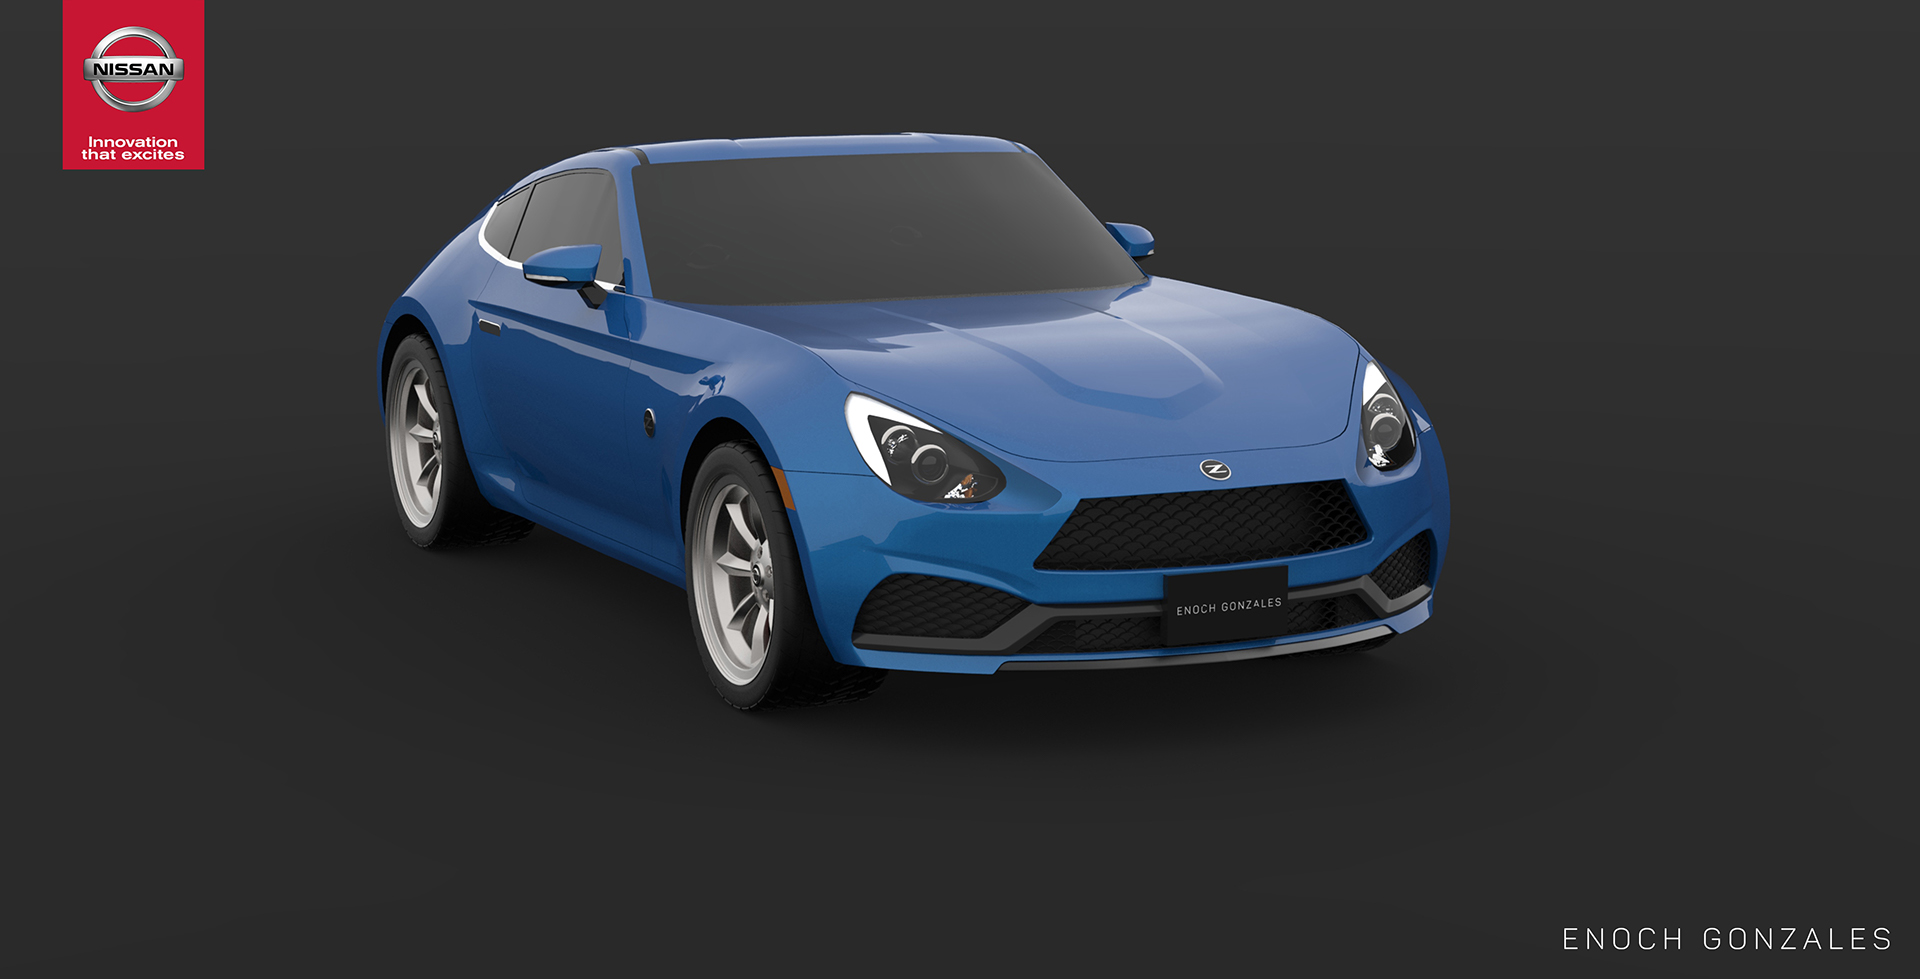 2019 Nissan Fairlady Z realistically envisioned - ForceGT.com